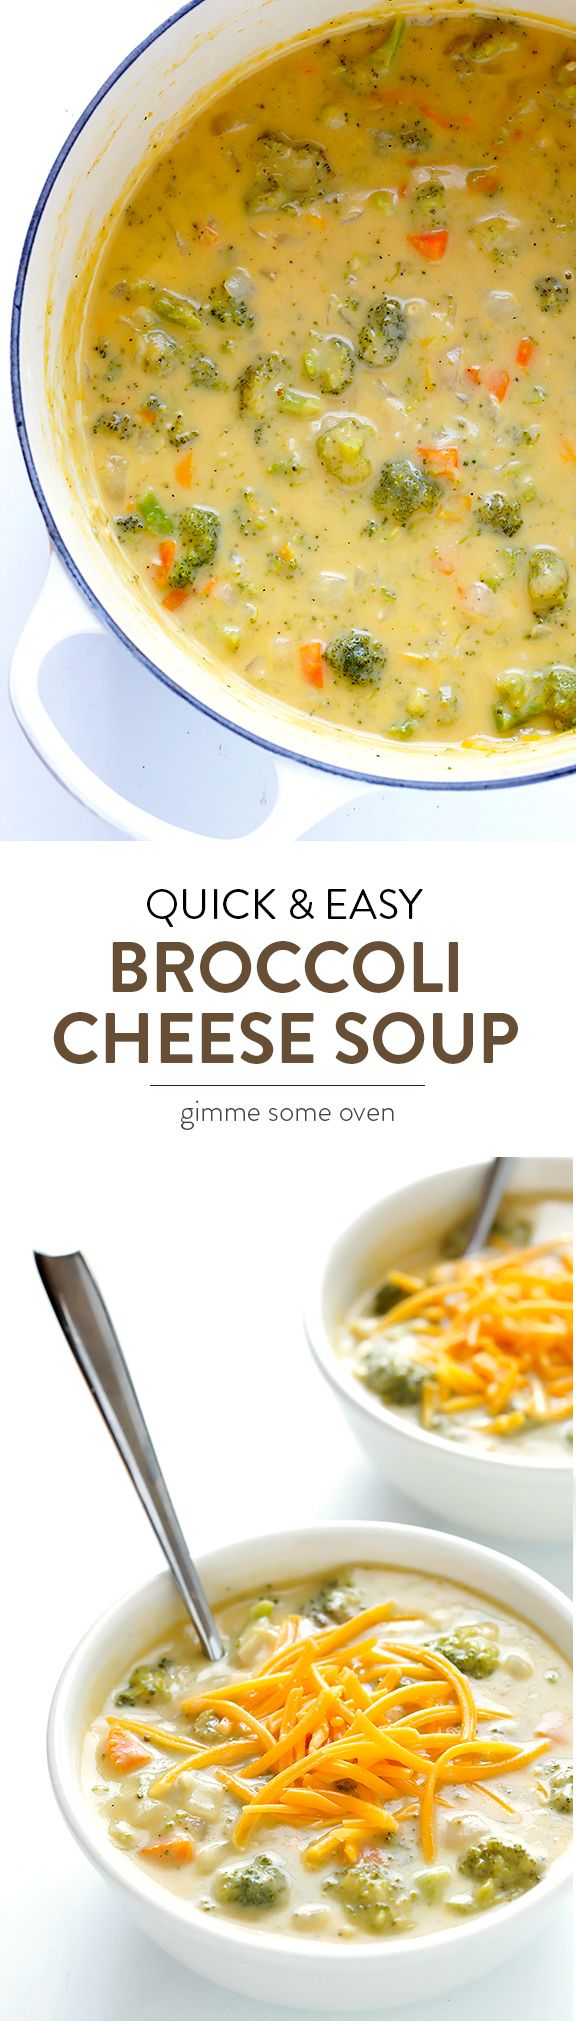 My all-time favorite recipe for delicious Broccoli Cheese Soup! Made with lots of fresh broccoli and cheddar, and always a crowd favorite | gimmesomeoven.com